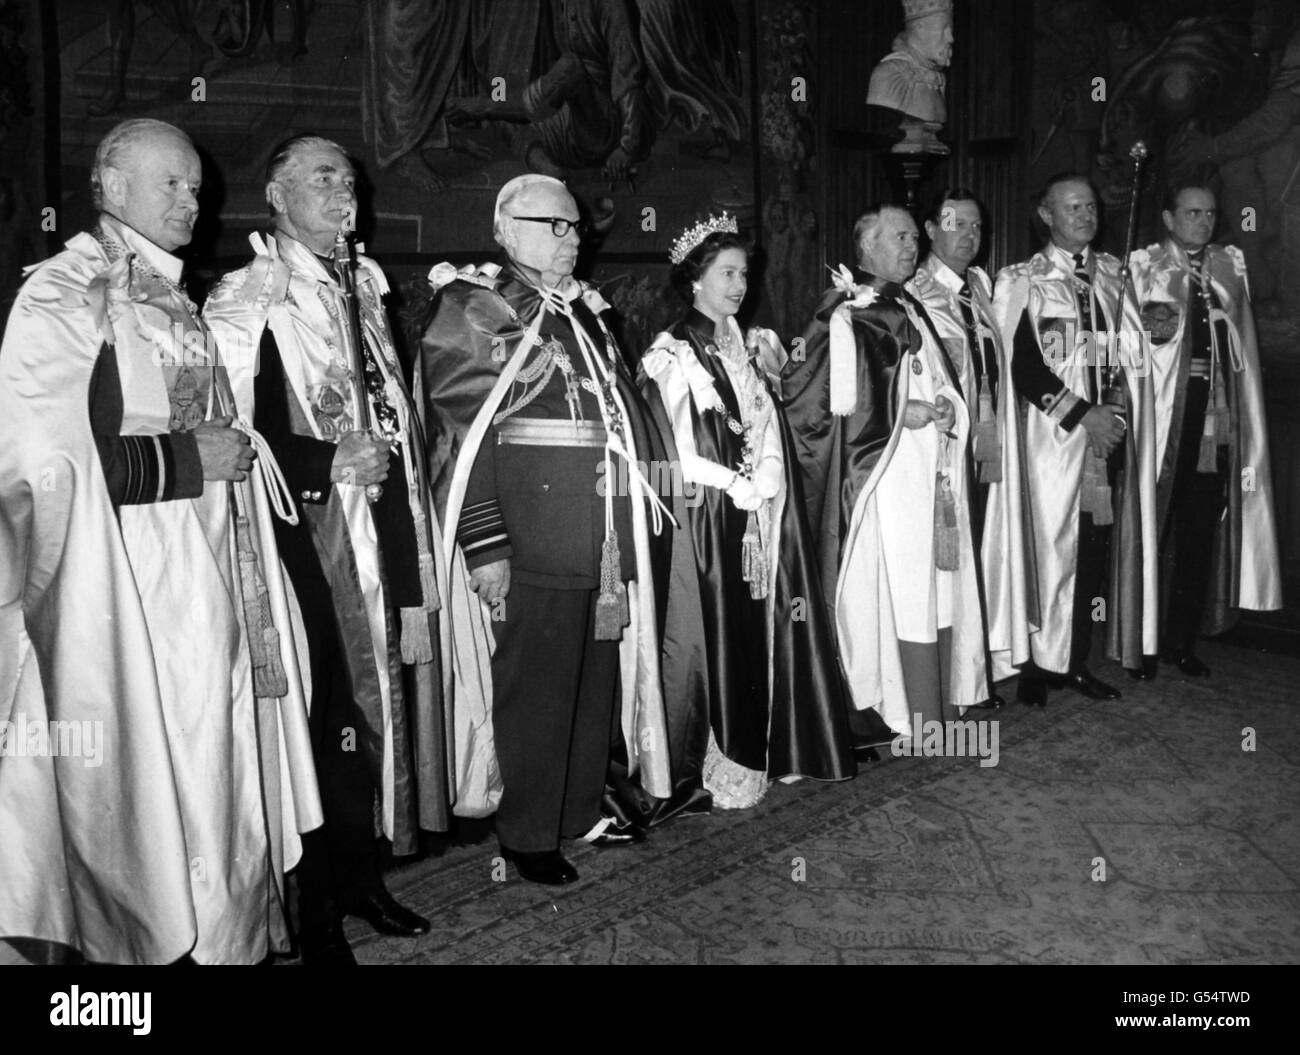 Royalty - Ceremony of the Order of the Bath - Westminster Abbey - Stock Image